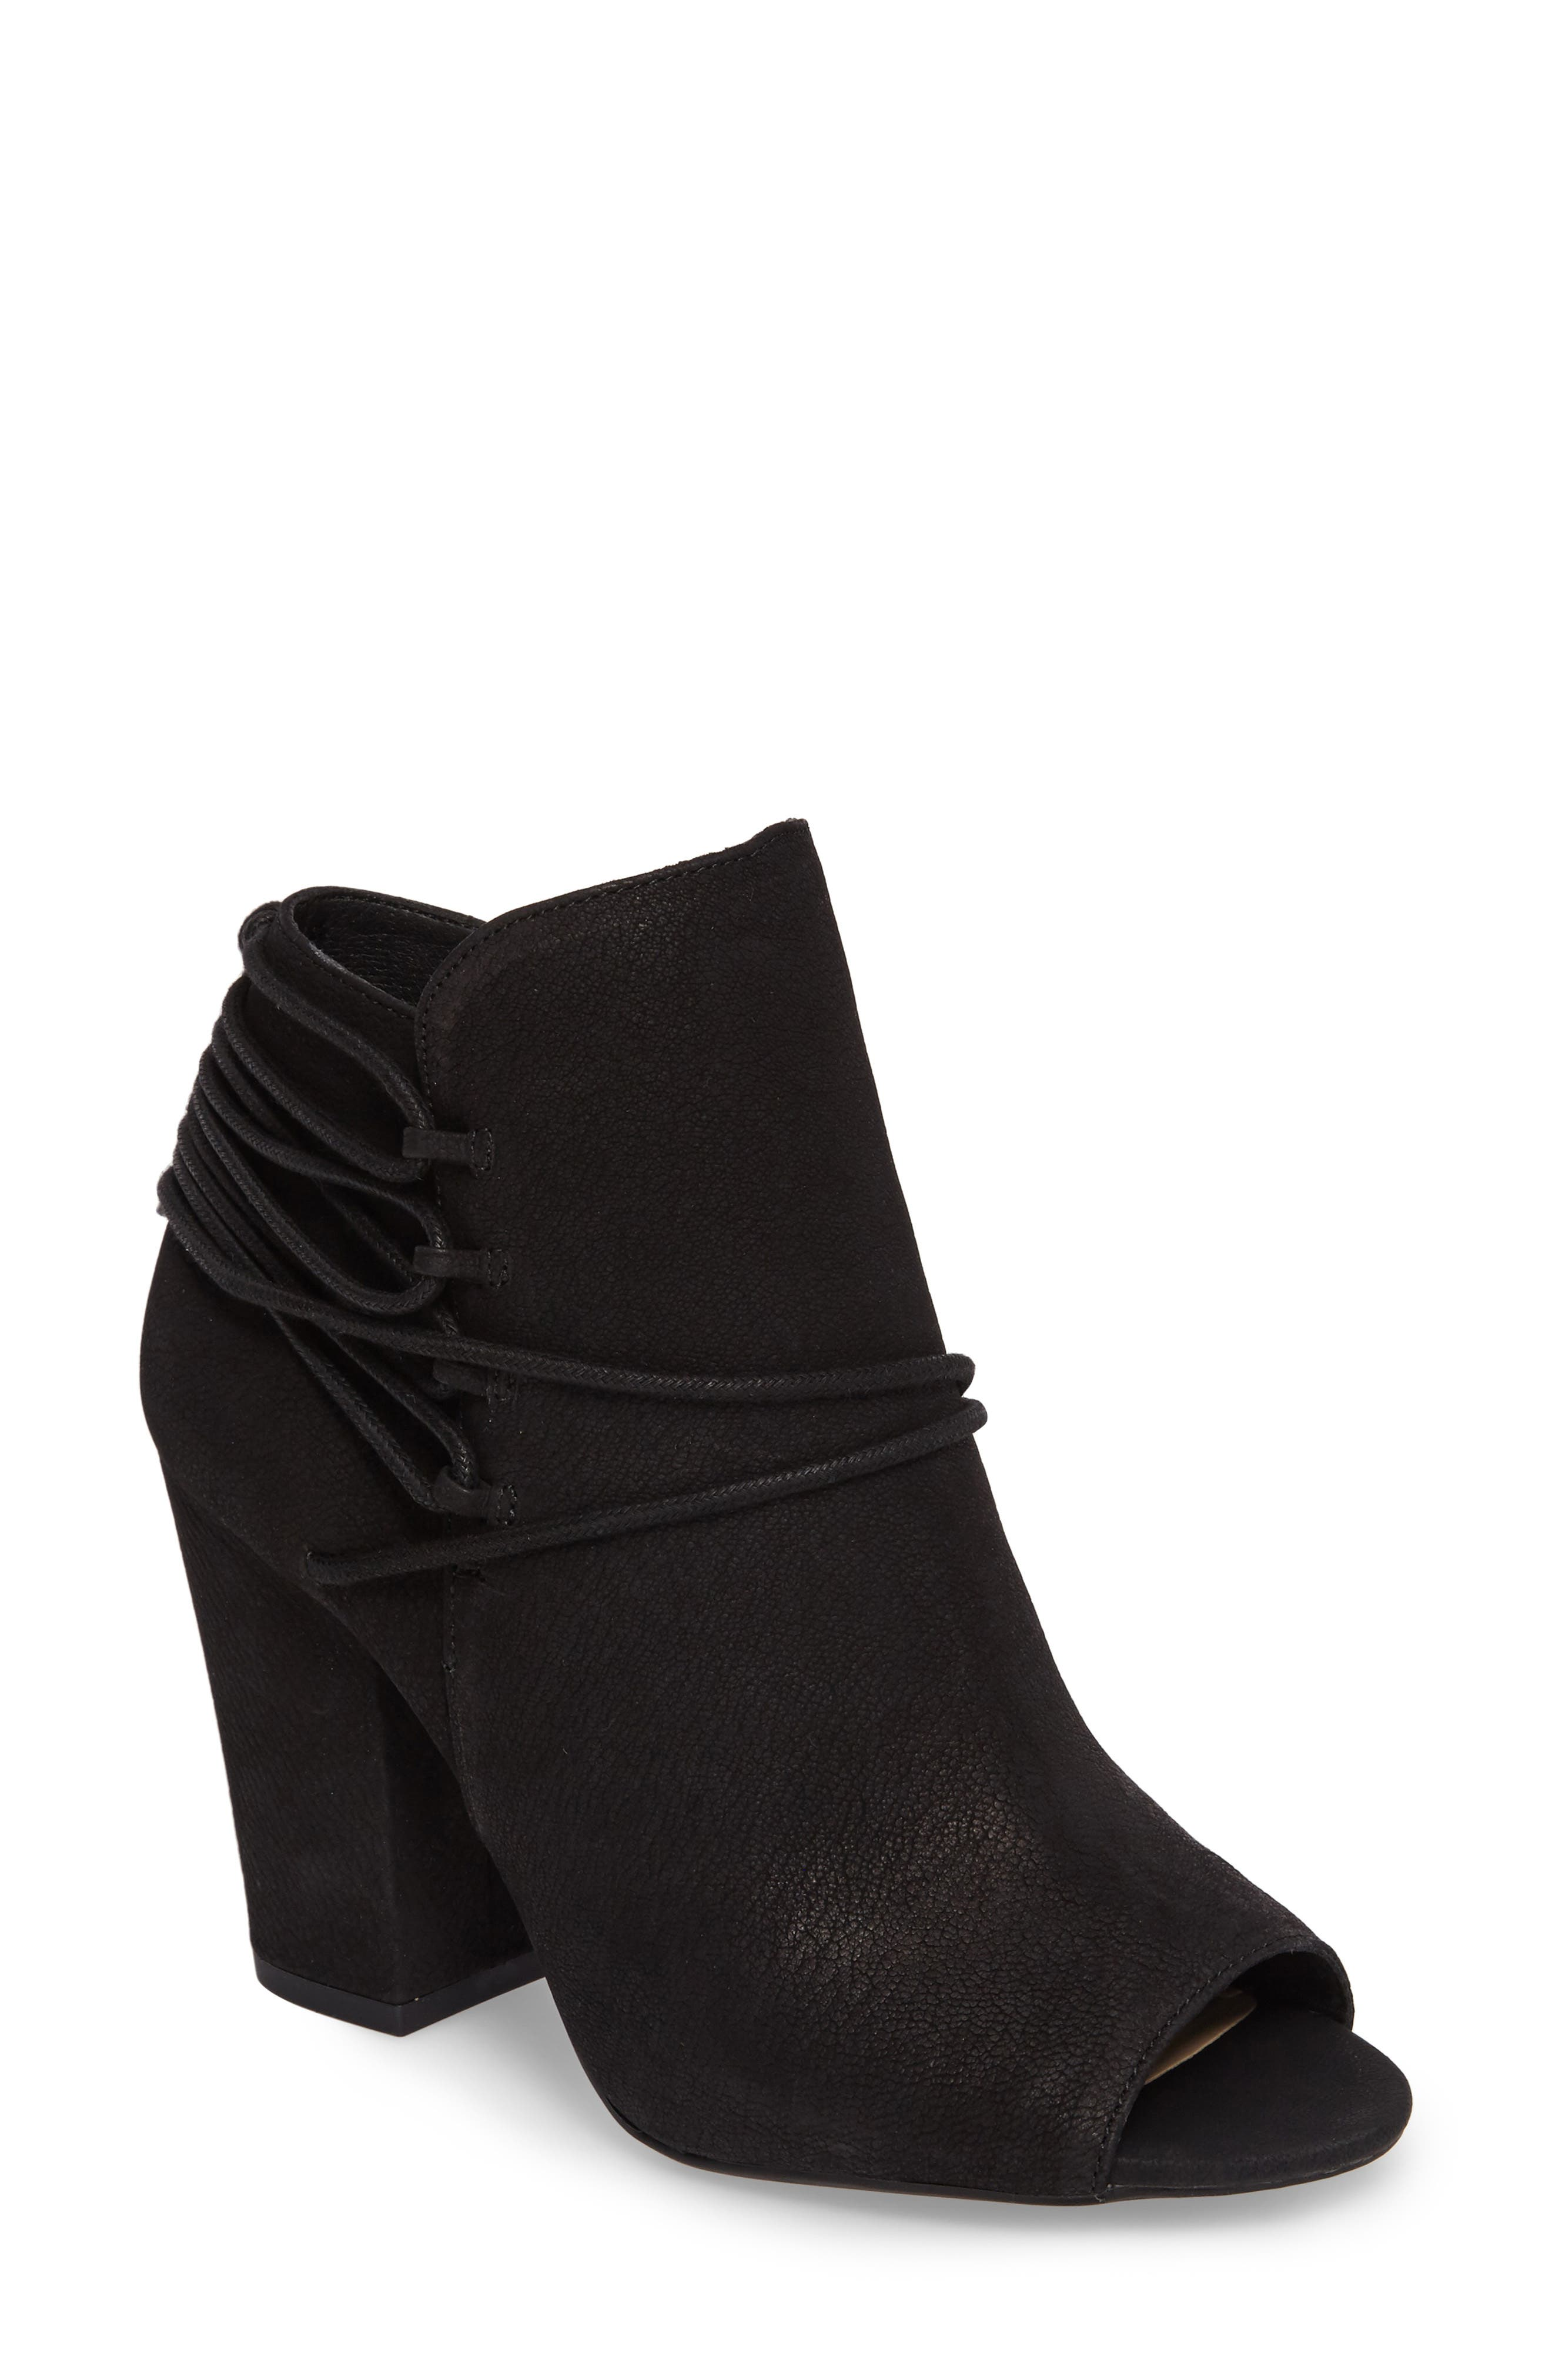 Alternate Image 1 Selected - Jessica Simpson Remni Peep Toe Bootie (Women)